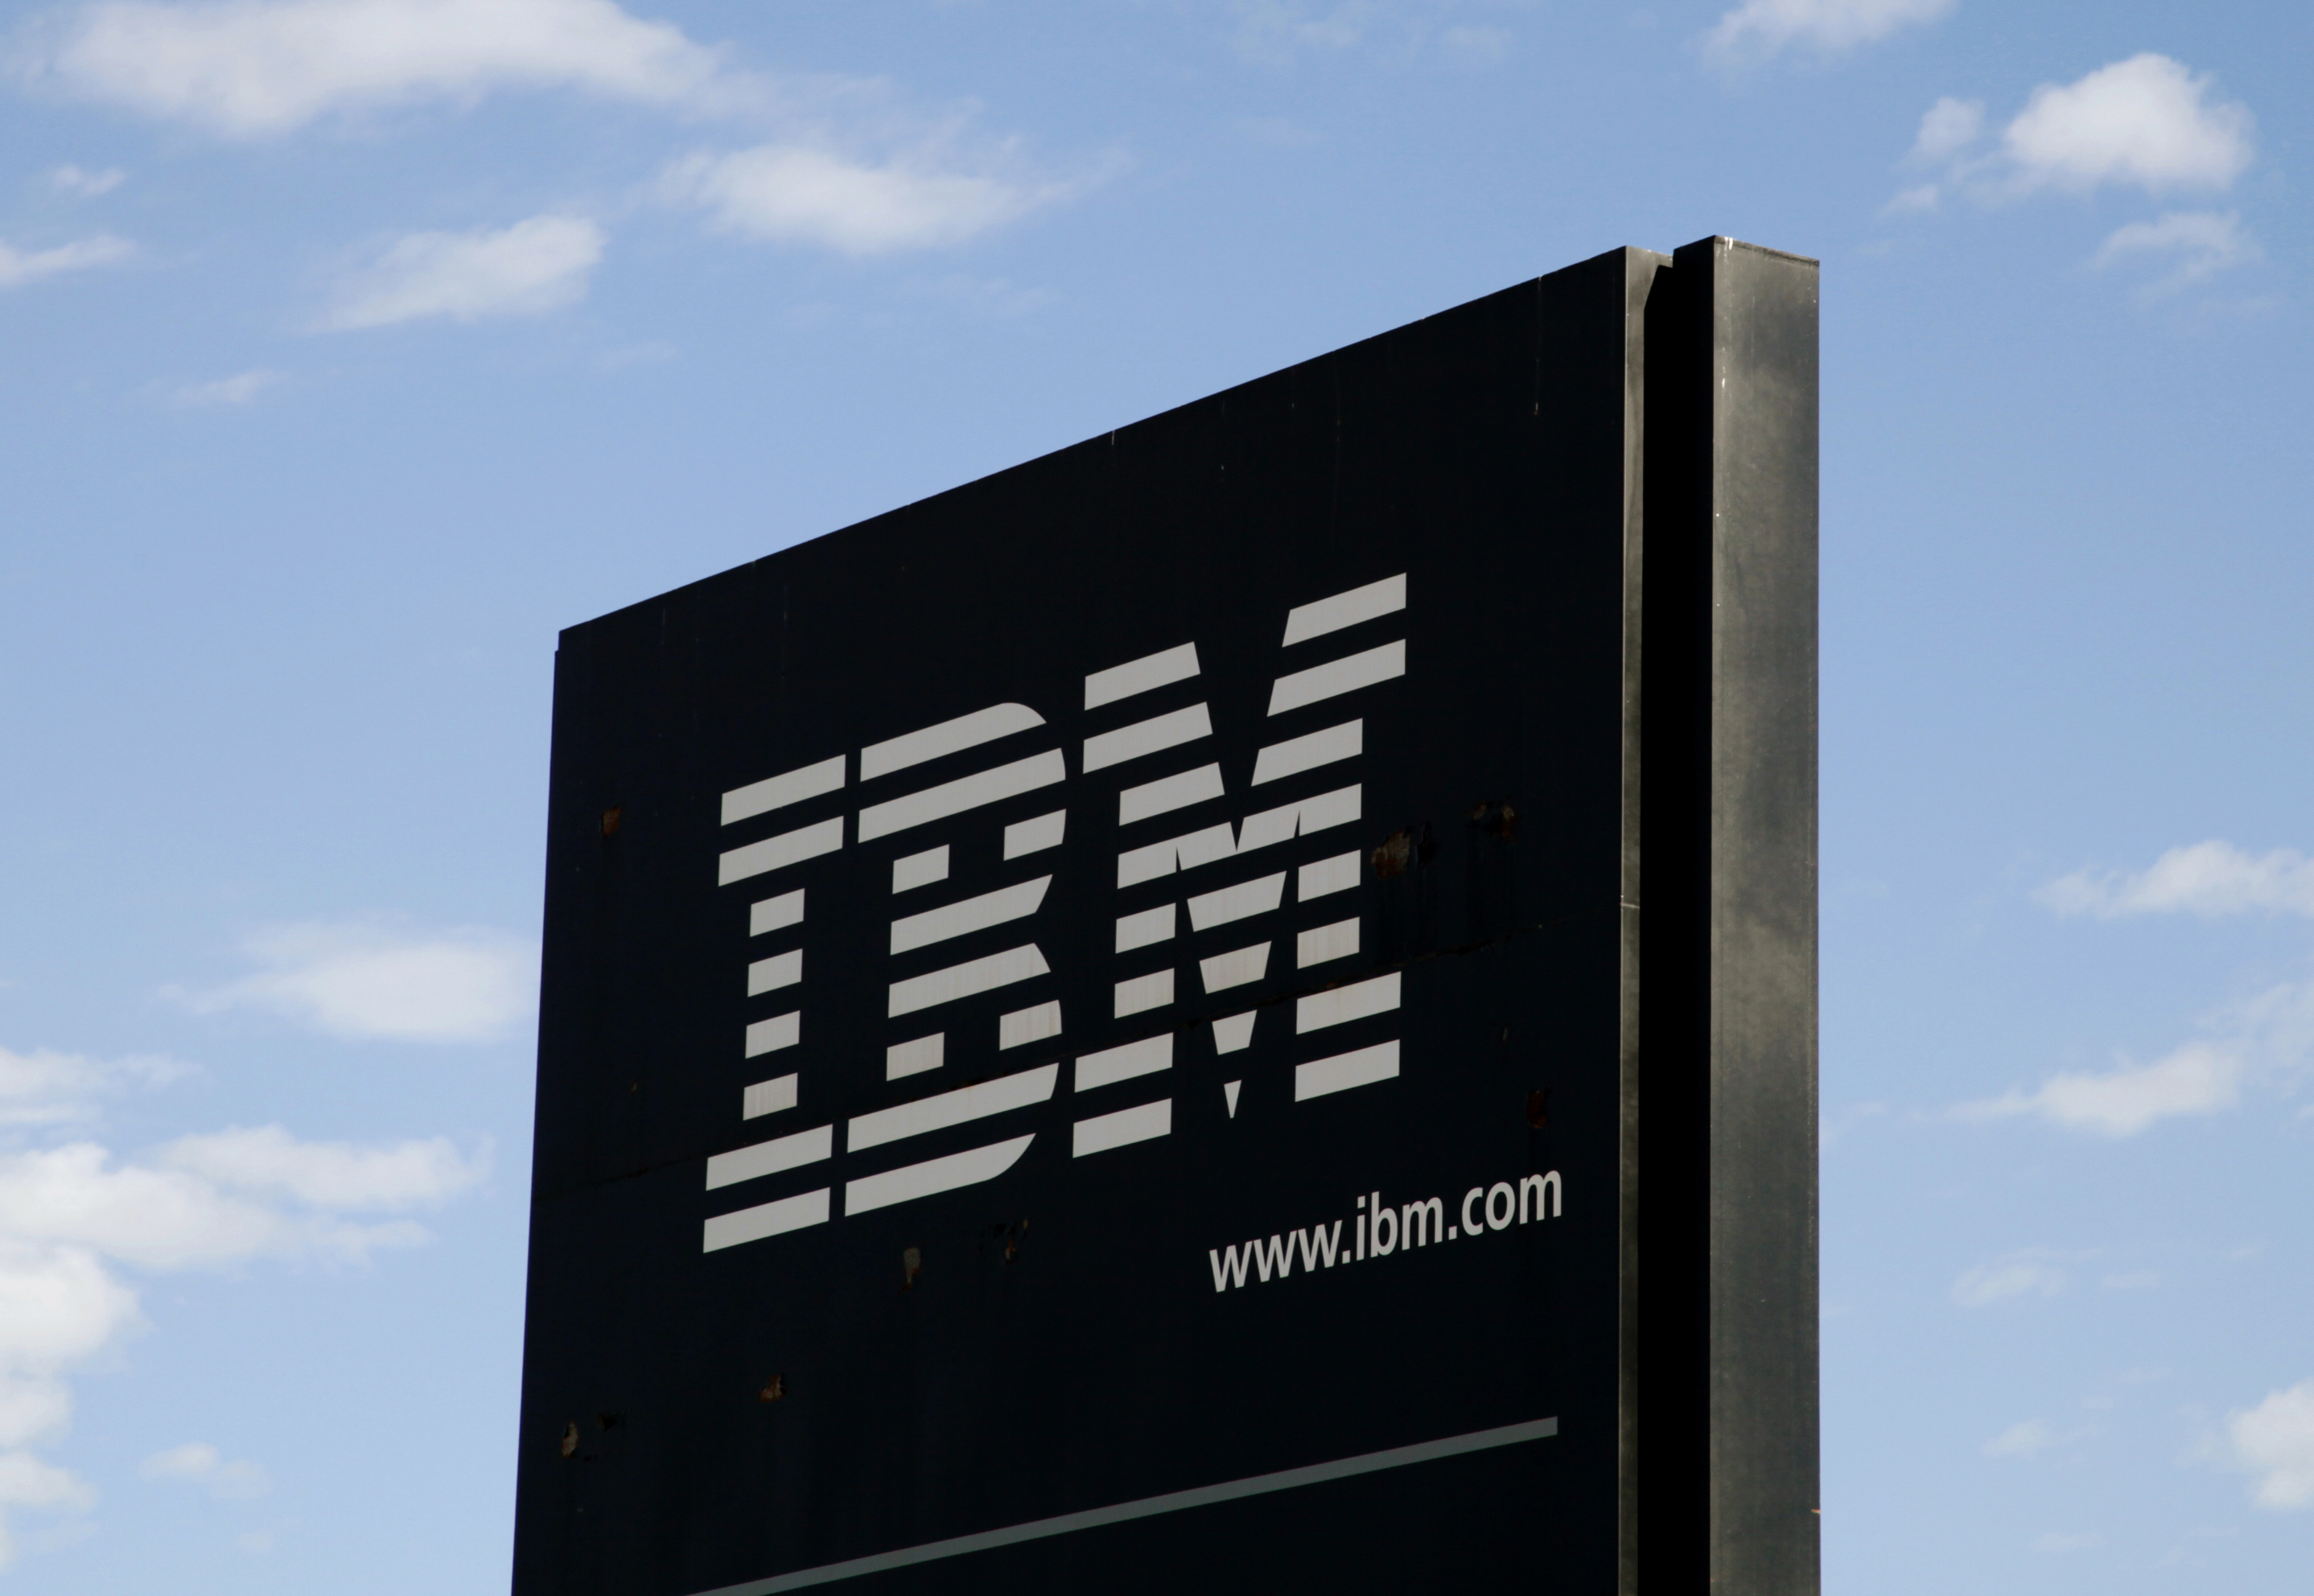 The sign at the IBM facility near Boulder, Colo.